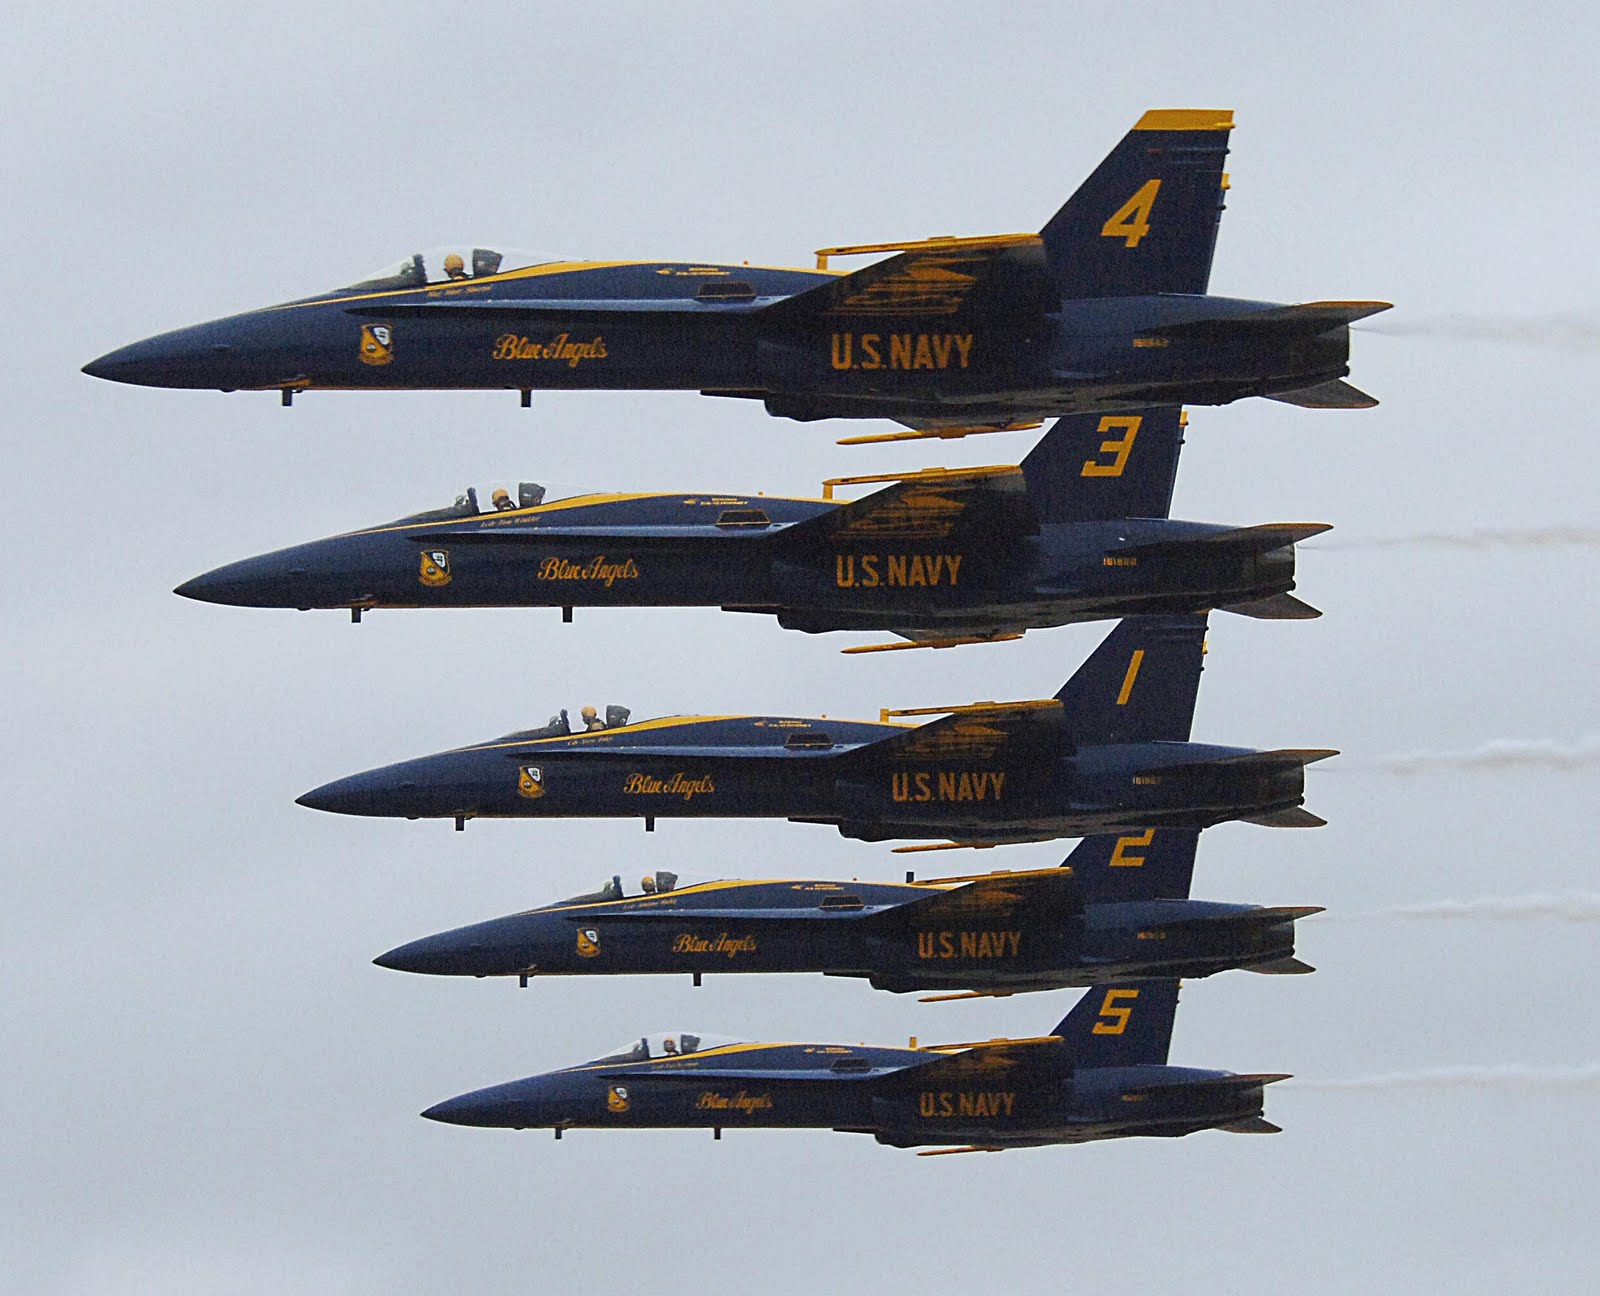 Milcom Monitoring Post: US Navy Blue Angels 2012 Practice Schedule